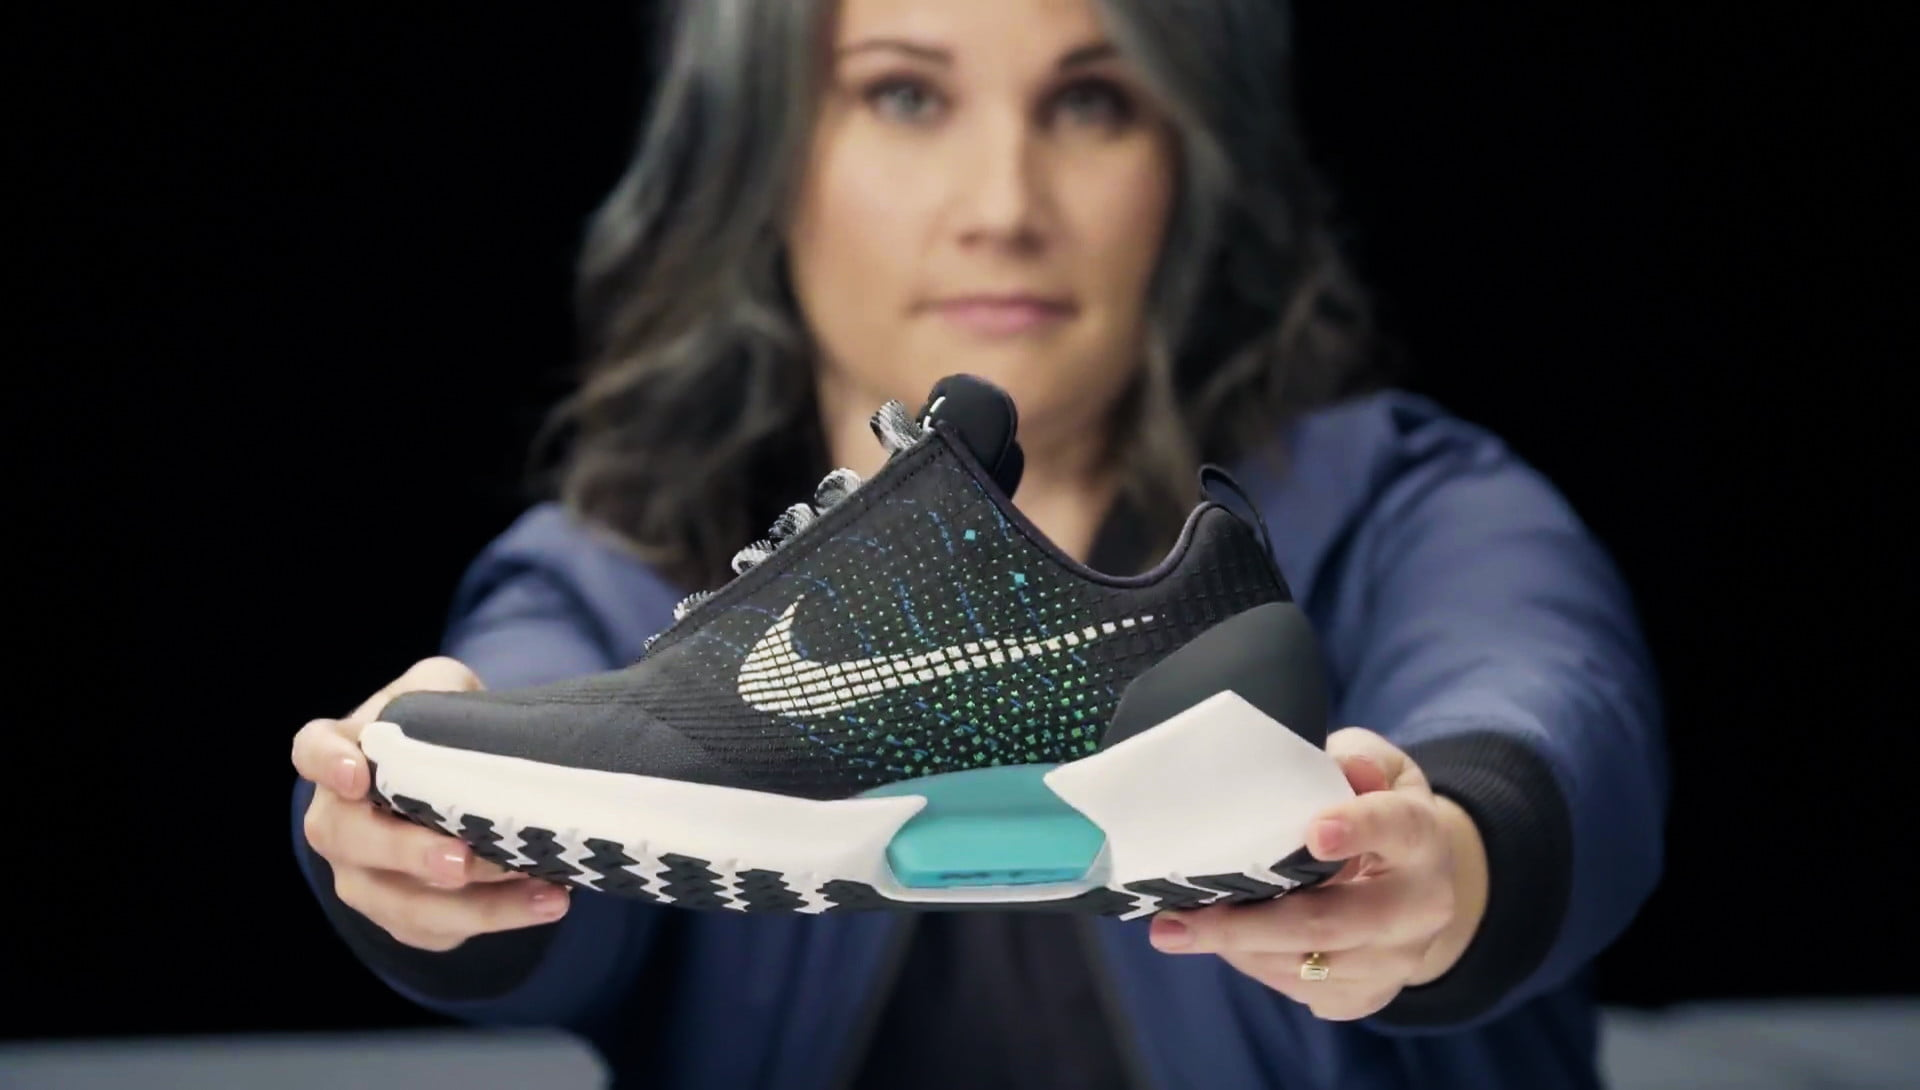 8f091908aa4e nike hyperadapt 10 self lacing sneakers video interview 1 0 tiffany beers